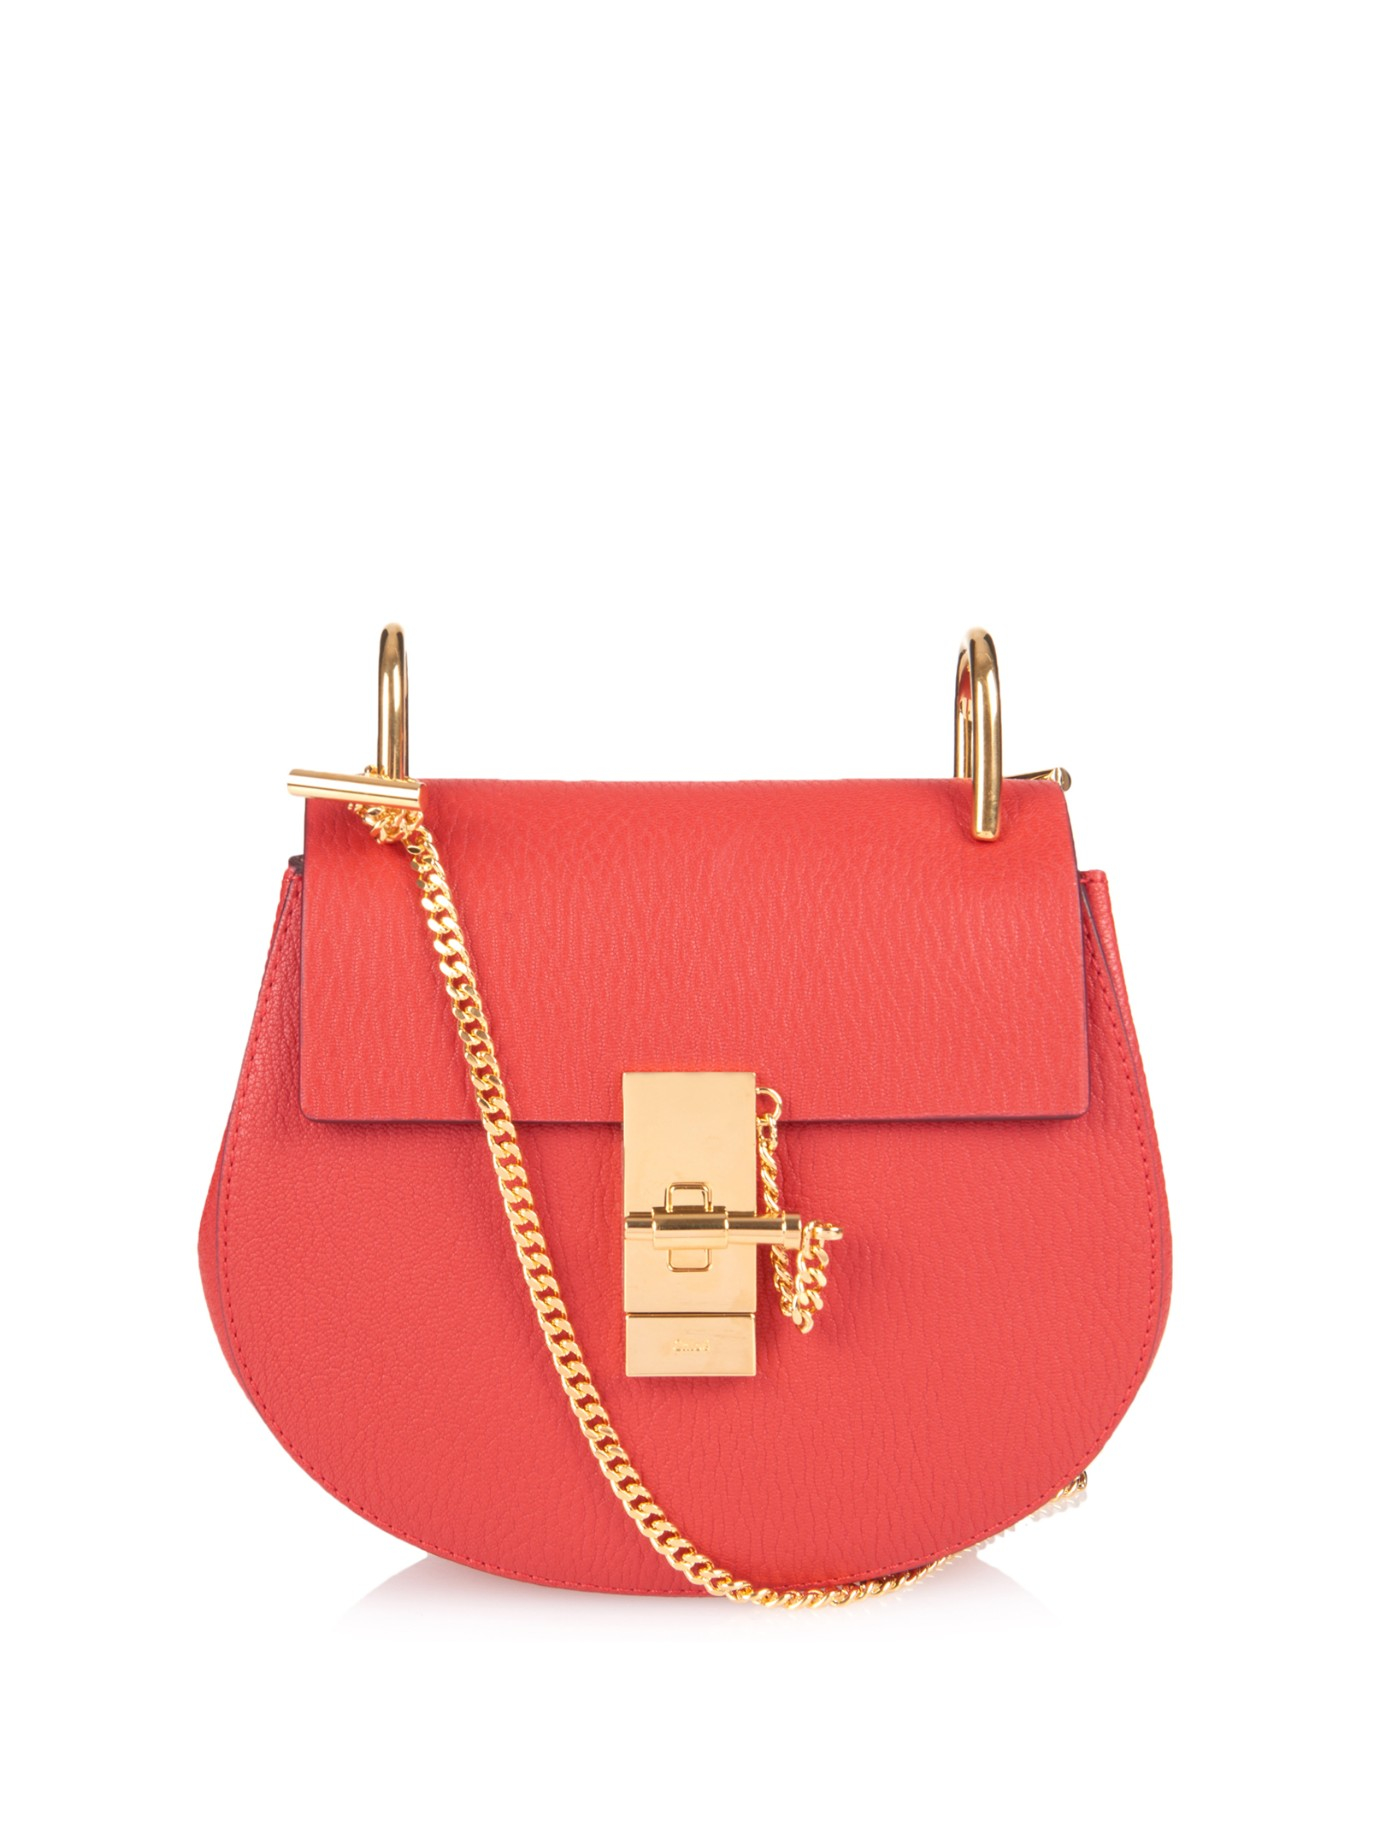 chloe fake - chloe drew mini ostrich leather crossbody bag, handbag chloe online